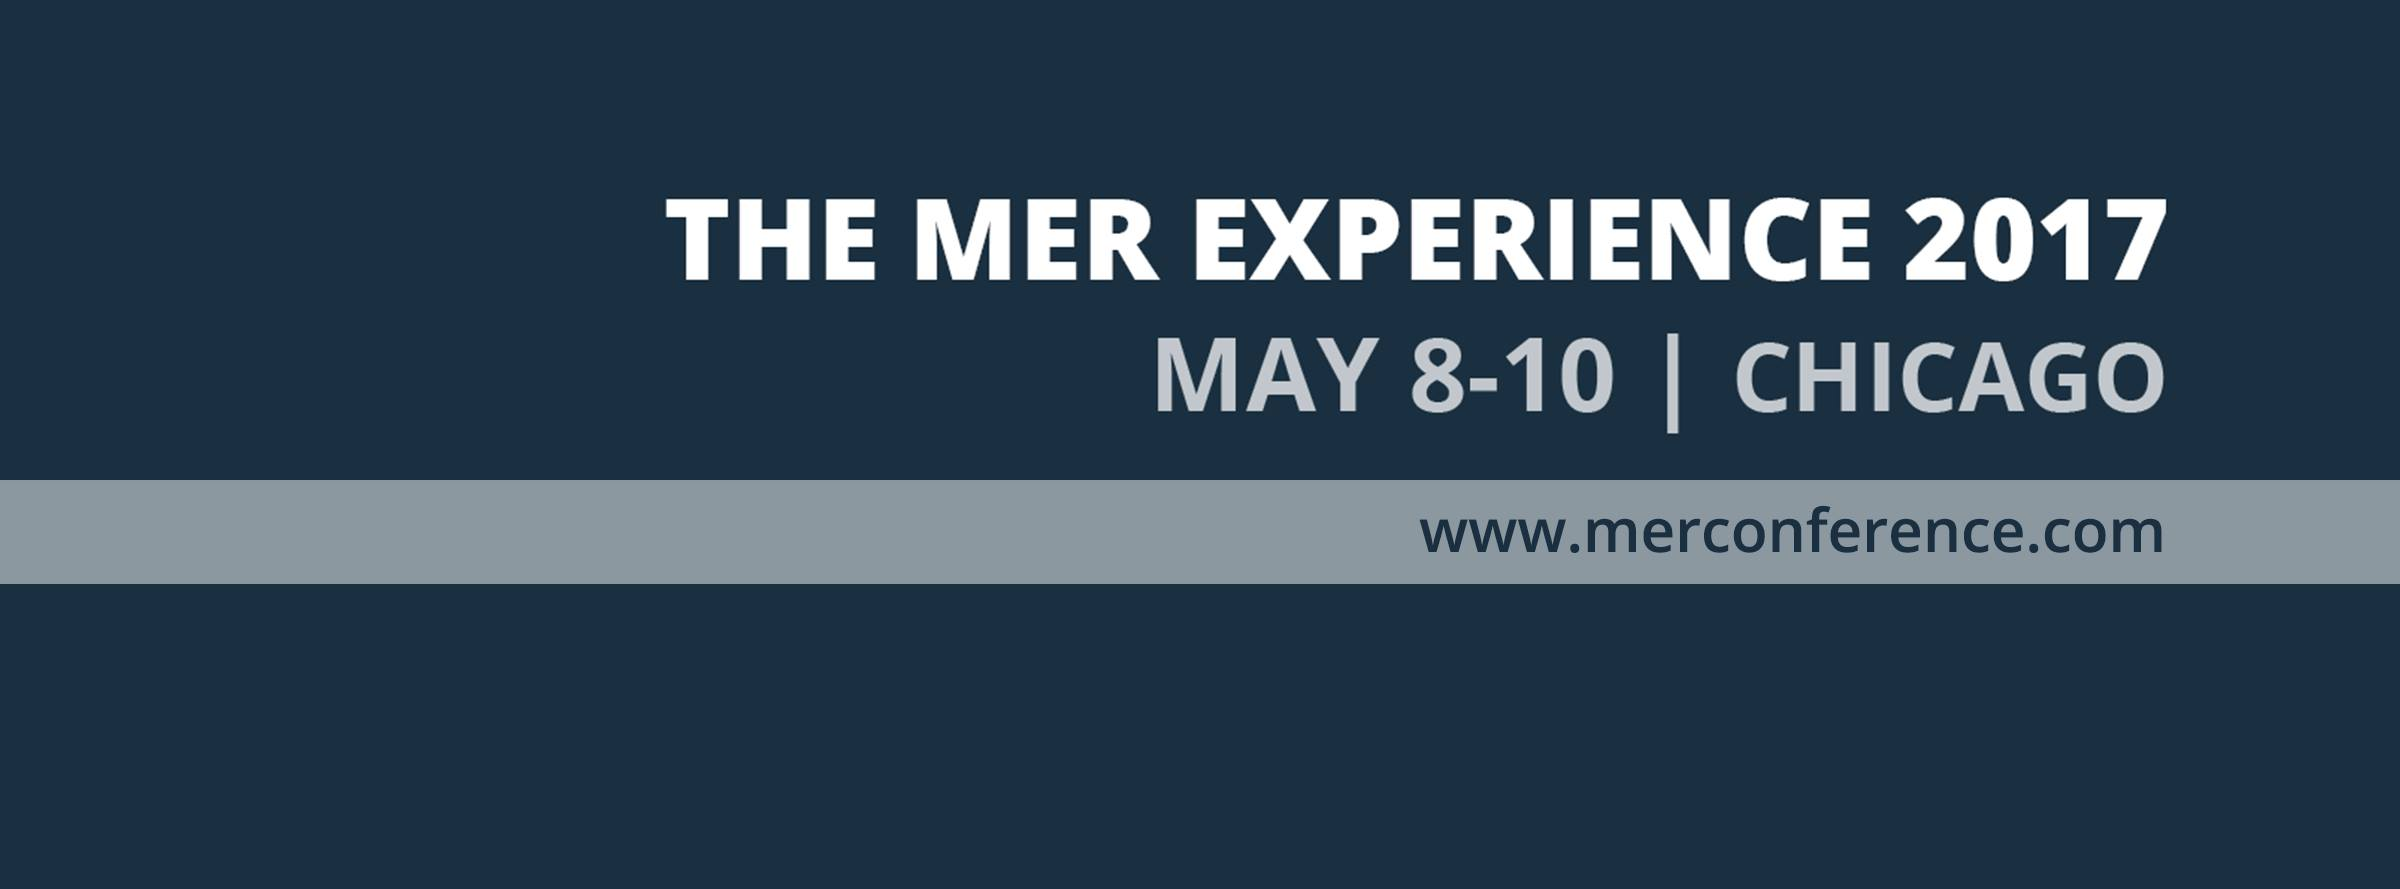 2017 MER Conference